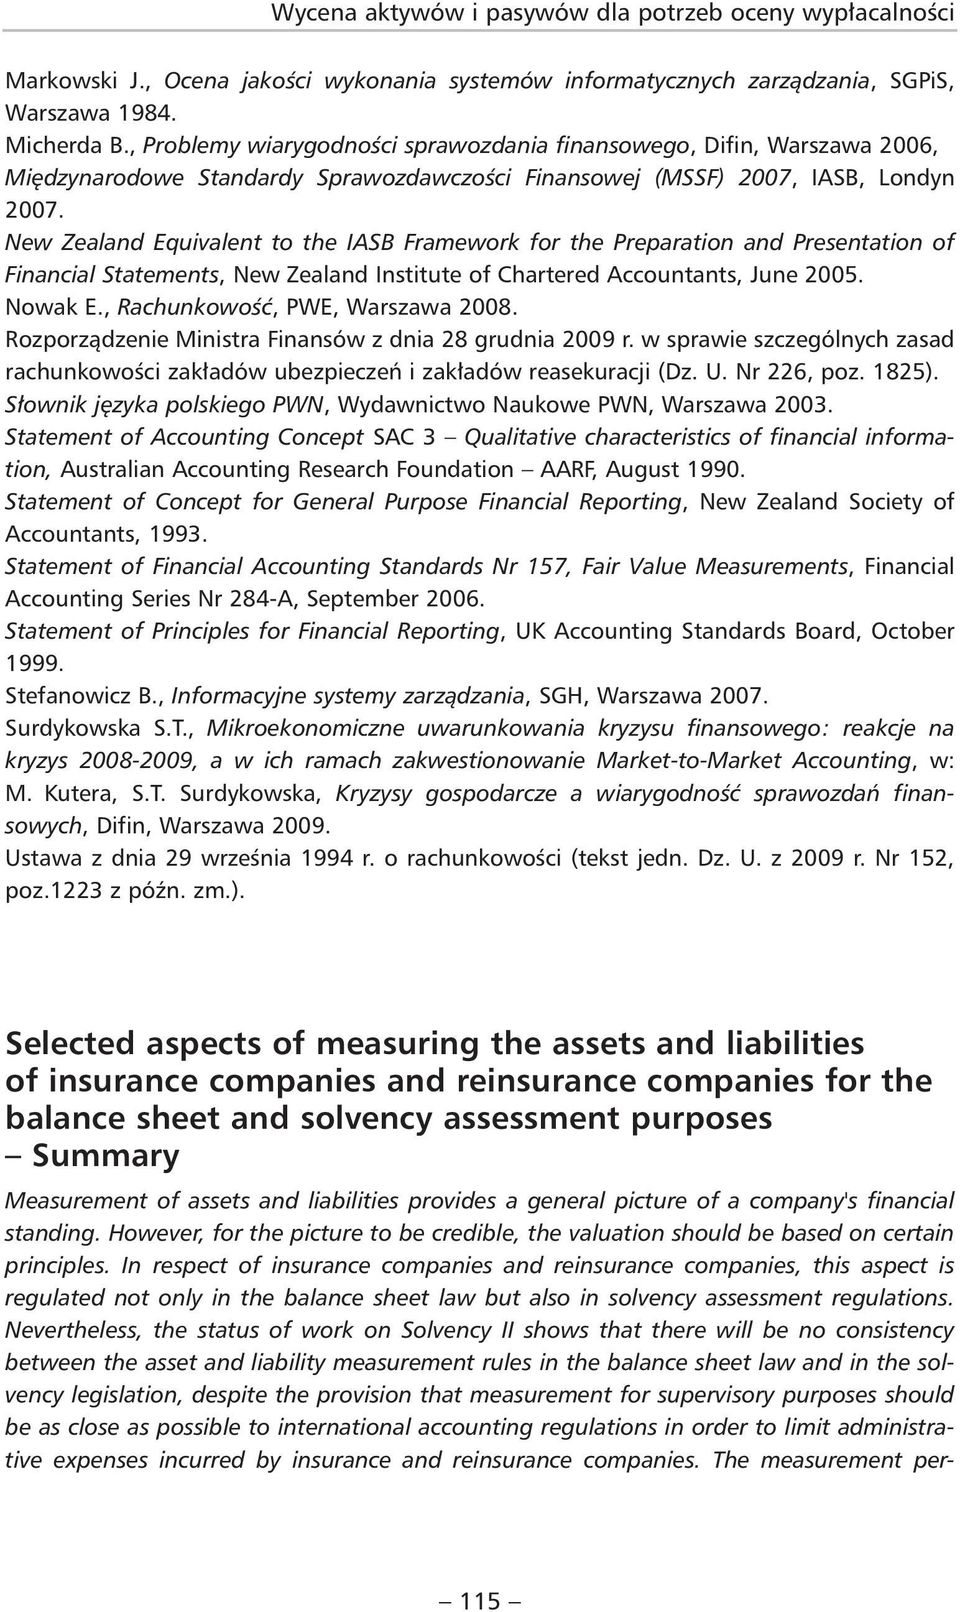 New Zealand Equivalent to the IASB Framework for the Preparation and Presentation of Financial Statements, New Zealand Institute of Chartered Accountants, June 2005. Nowak E.